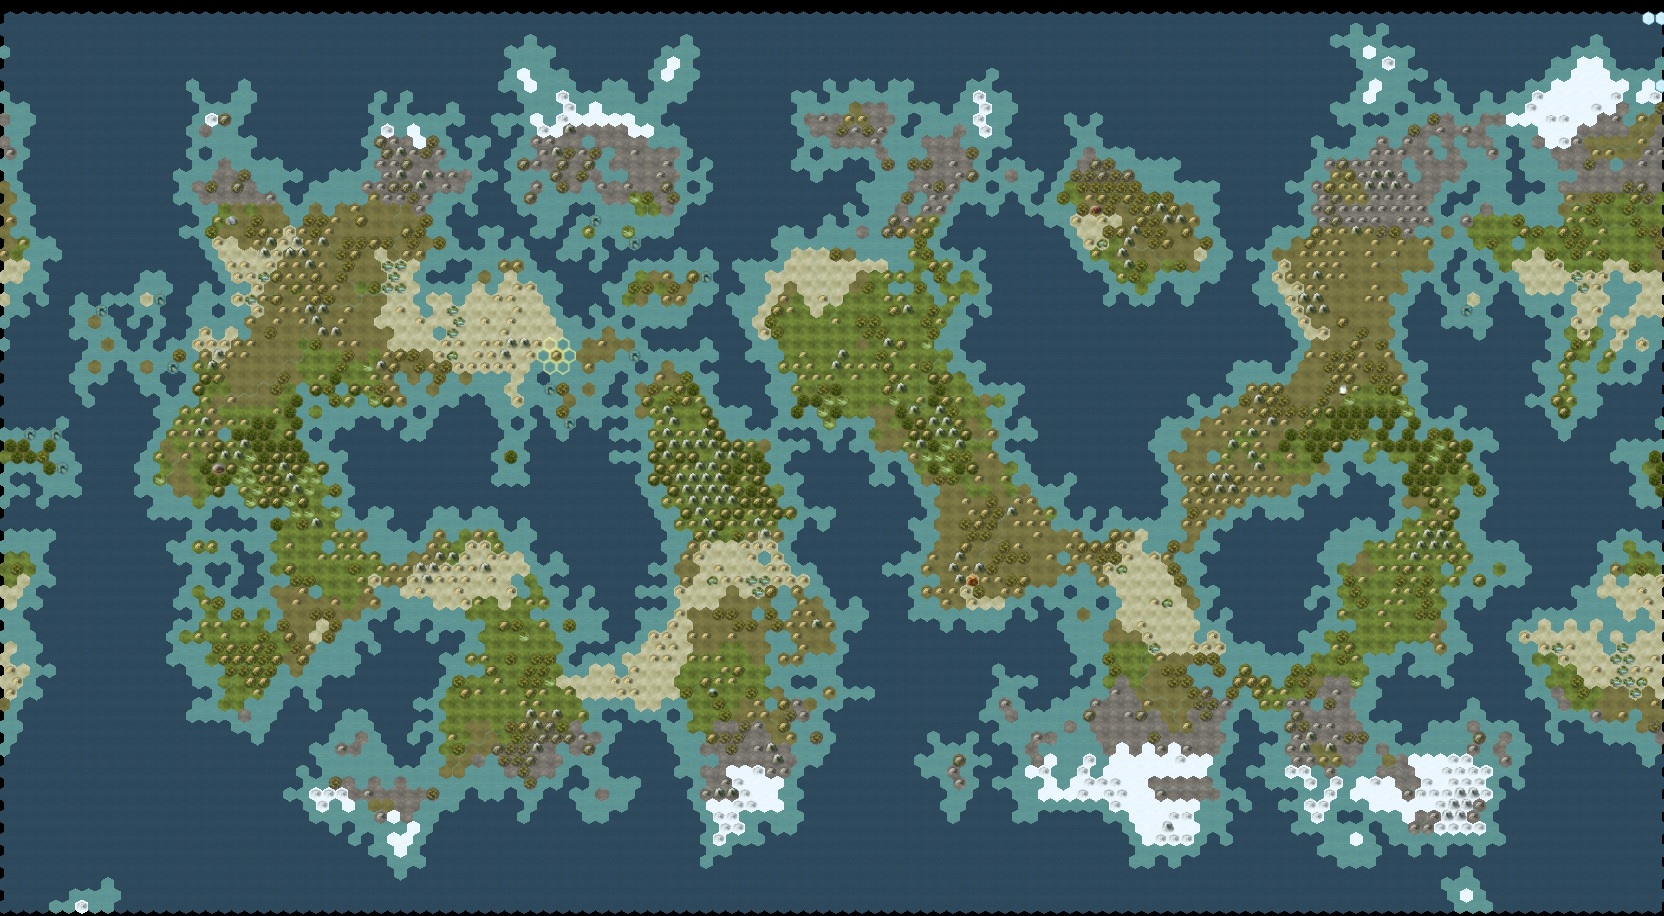 Map maker in an unlikely place | Morrus' Unofficial Tabletop ... on dnd map of an island, dnd map size, dnd map builder, dnd map tiles, dnd map generator, dnd map marsh, dnd map online, dnd map house, dnd forest map, dnd map key, dnd city map, dnd world map,